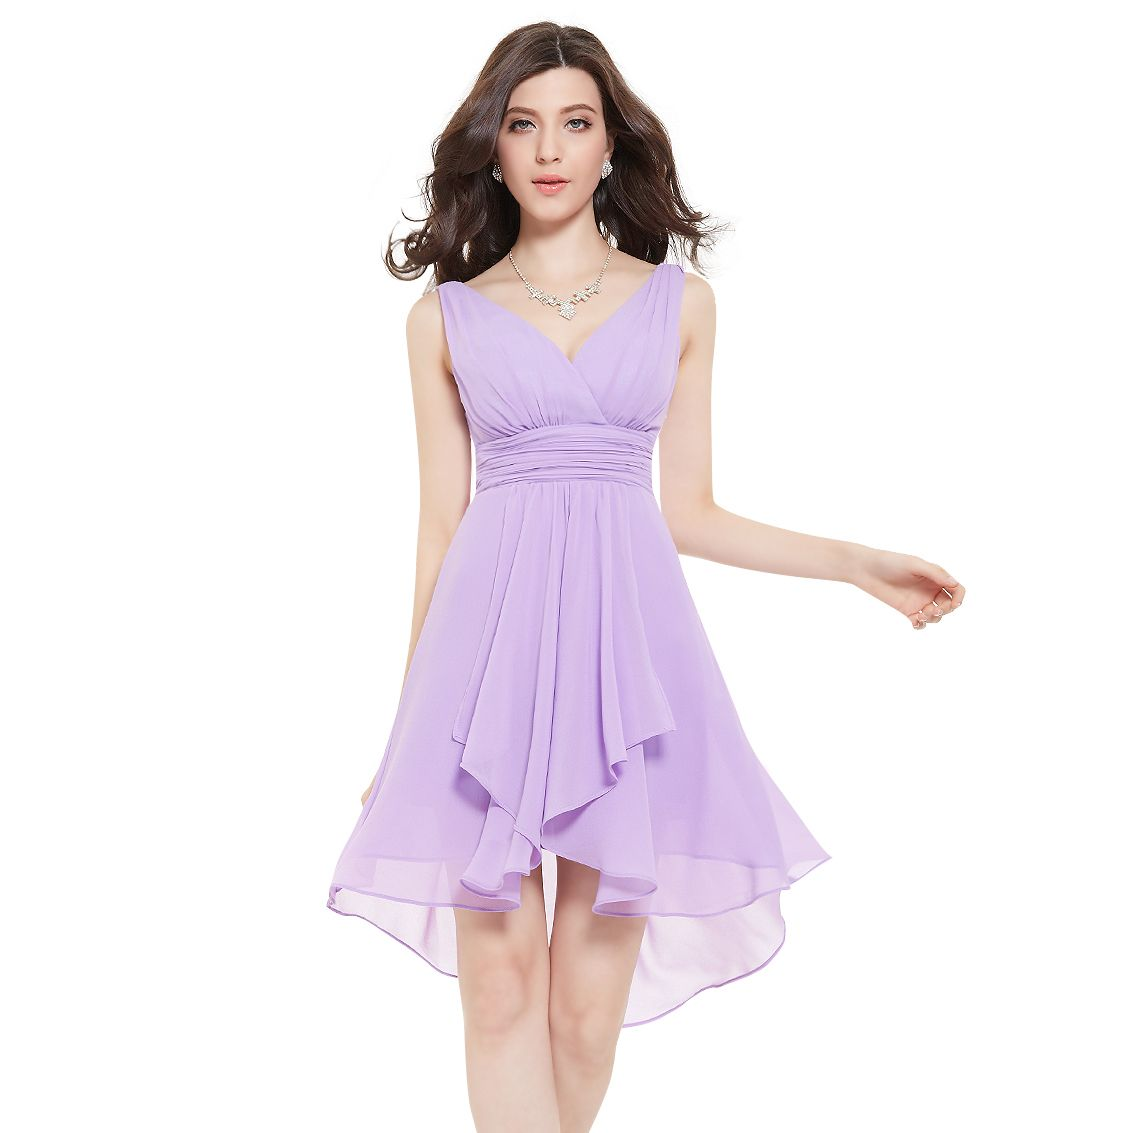 Ruffles padded v neck high low bridesmaid dress 03644 sears ruffles padded v neck high low bridesmaid dress 03644 sears ombrellifo Gallery